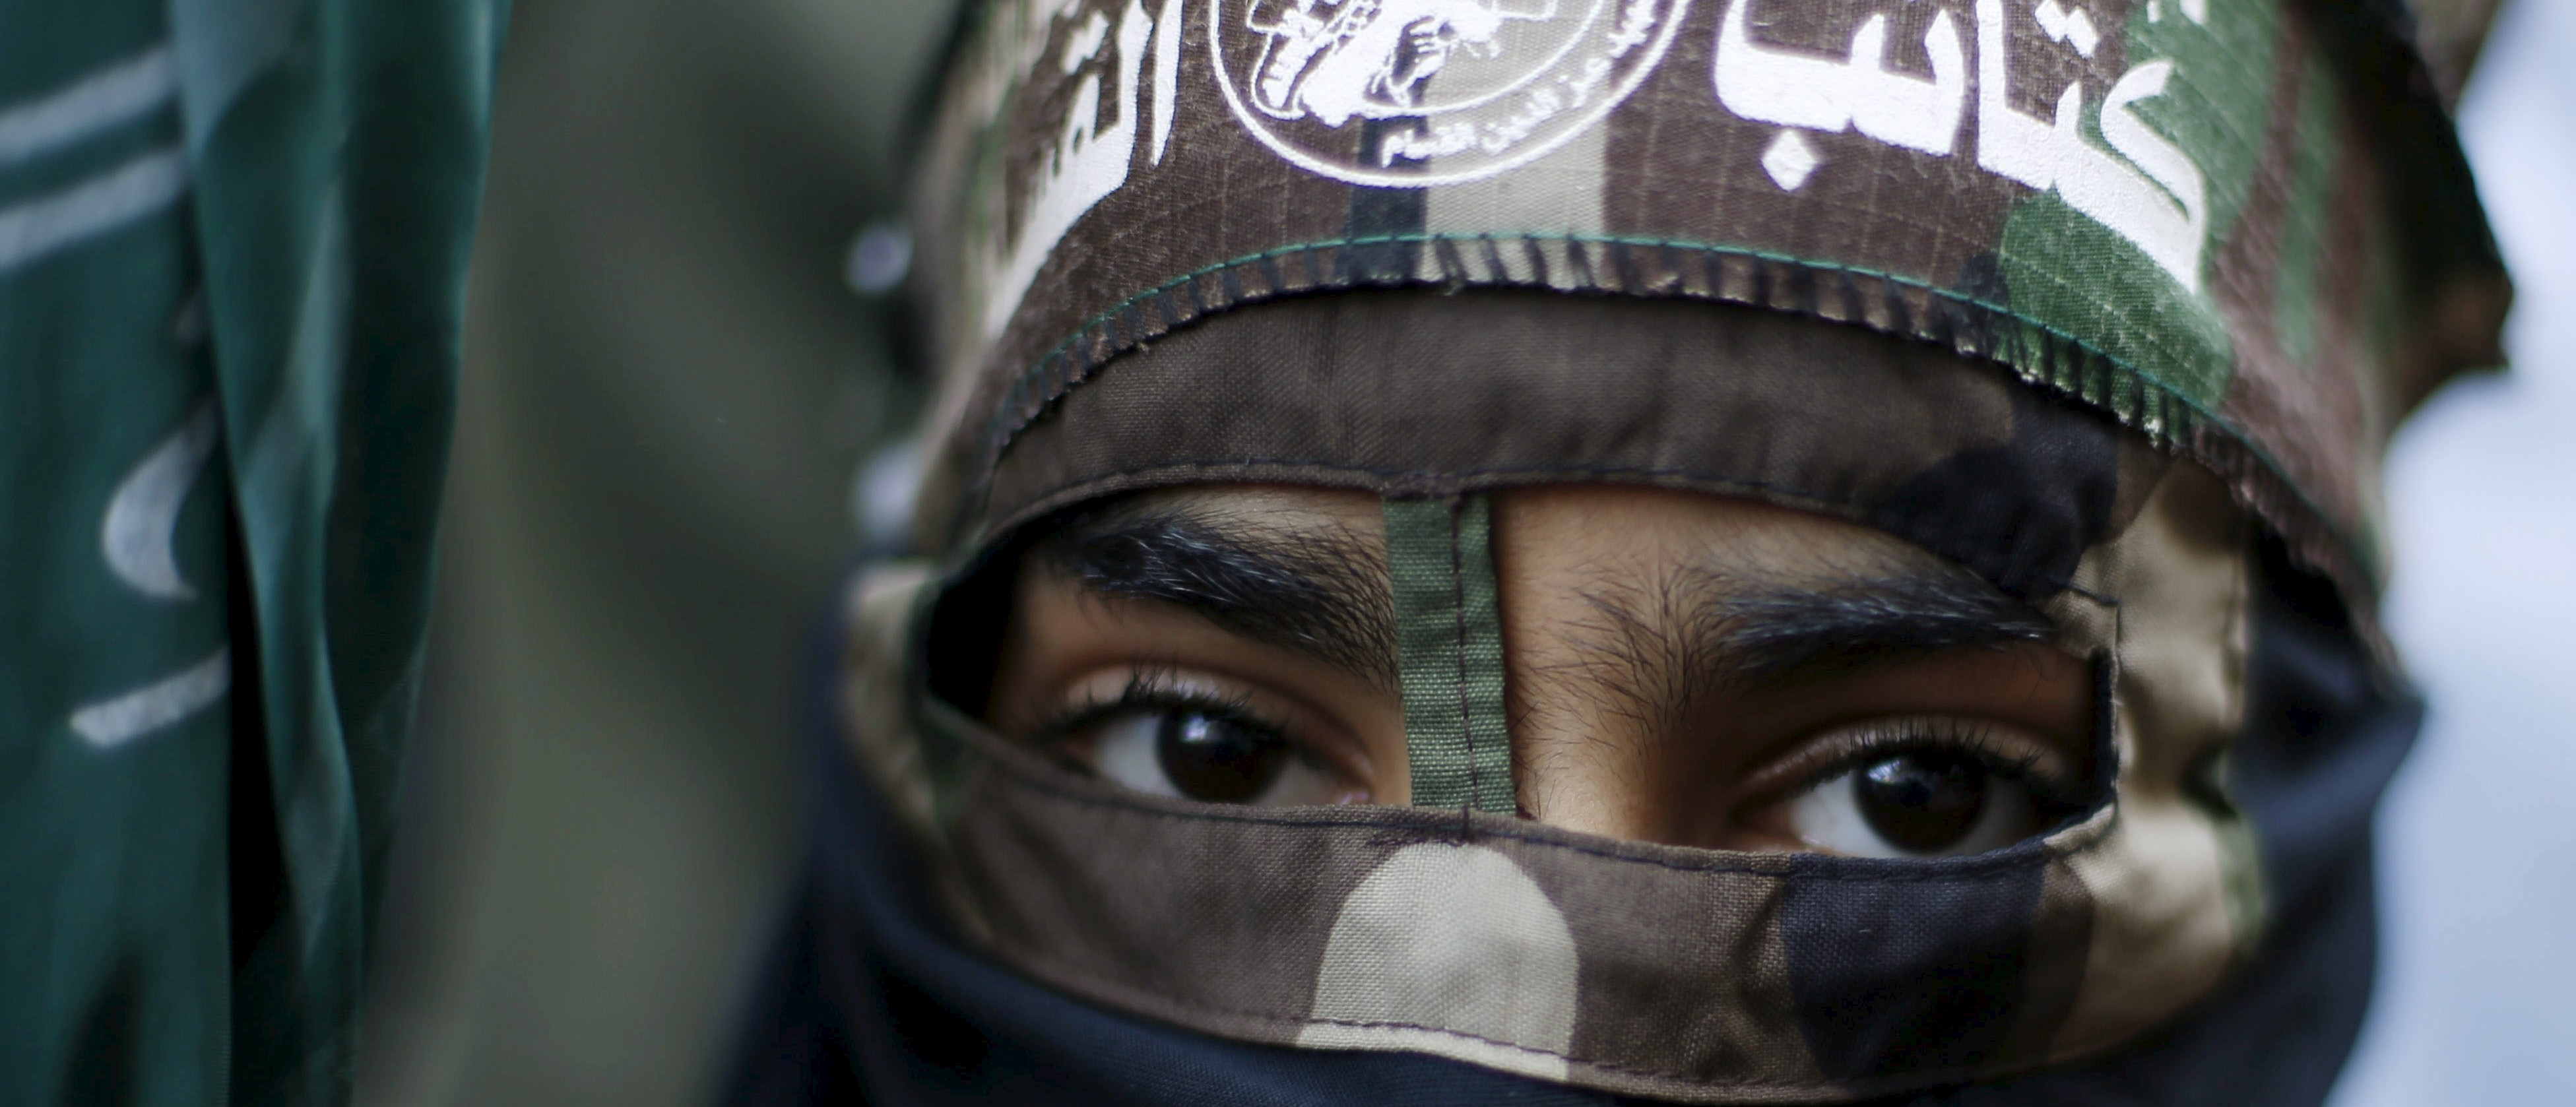 A masked Palestinian boy wearing the headband of Hamas's armed wing takes part in a rally marking the 28th anniversary of Hamas' founding, in Gaza City December 14, 2015. REUTERS/Suhaib Salem - RTX1YLQ9